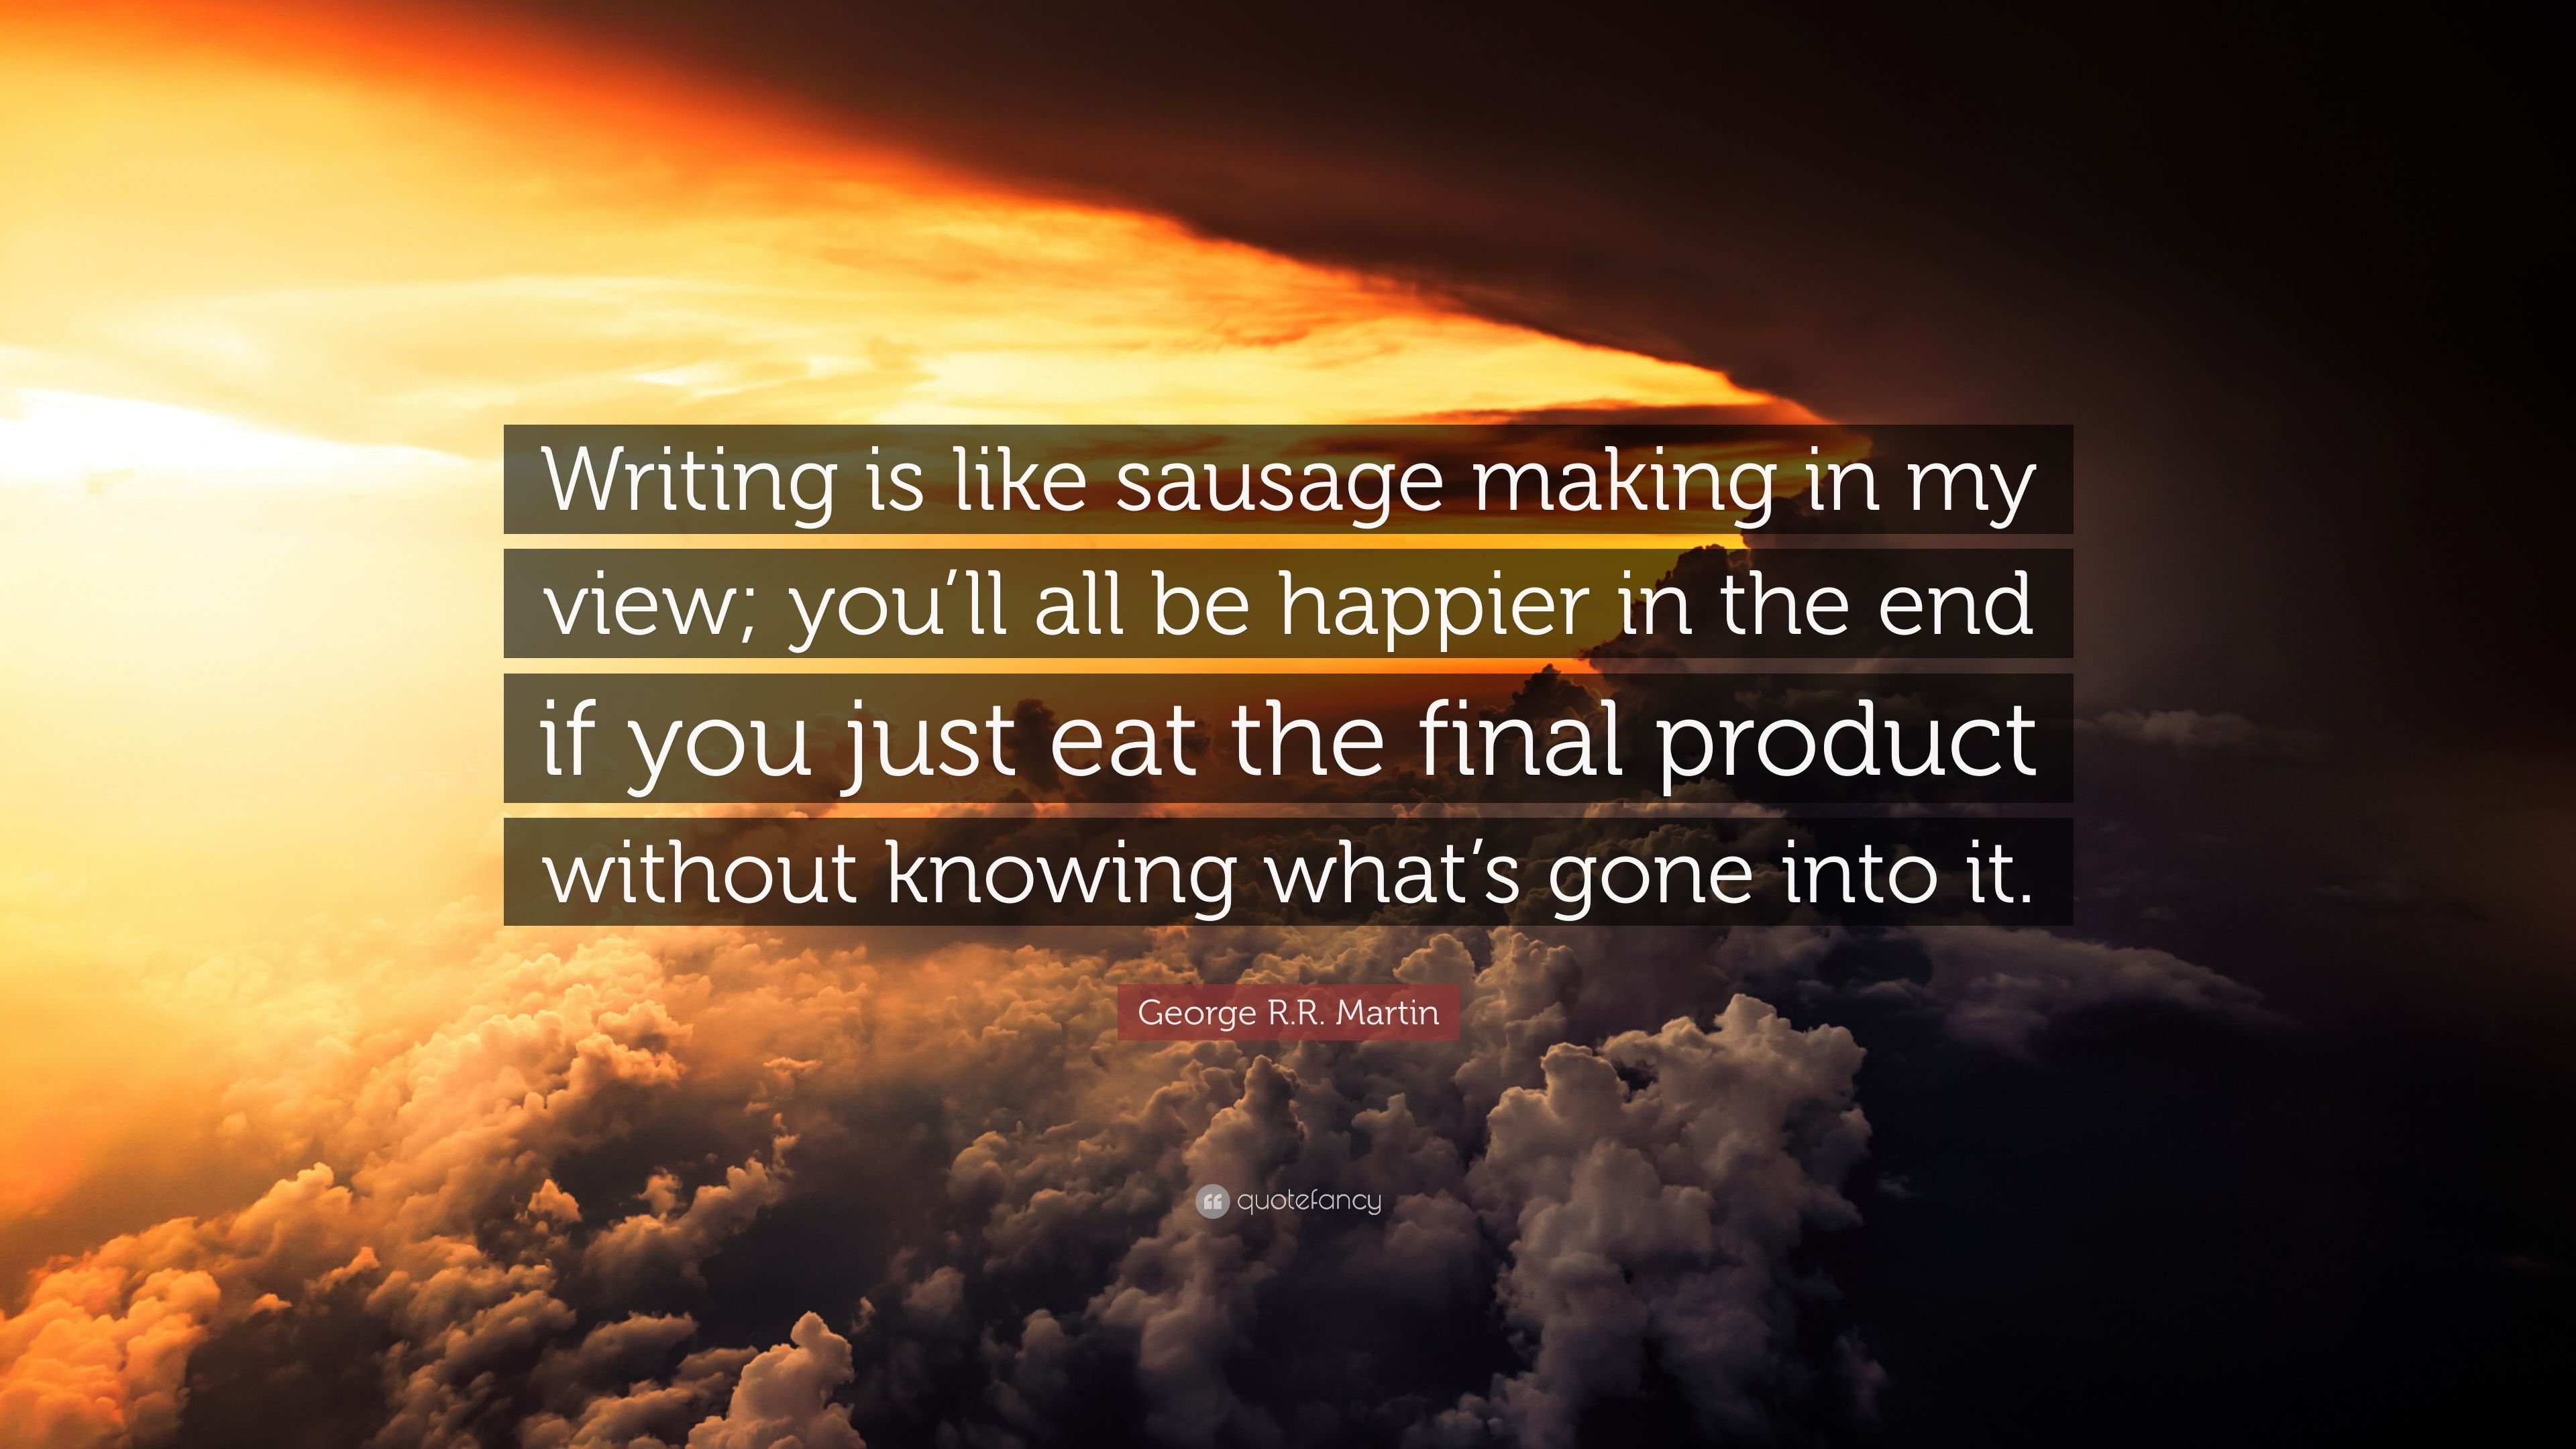 https://quotefancy.com/media/wallpaper/3840x2160/2360539-George-R-R-Martin-Quote-Writing-is-like-sausage-making-in-my-view.jpg